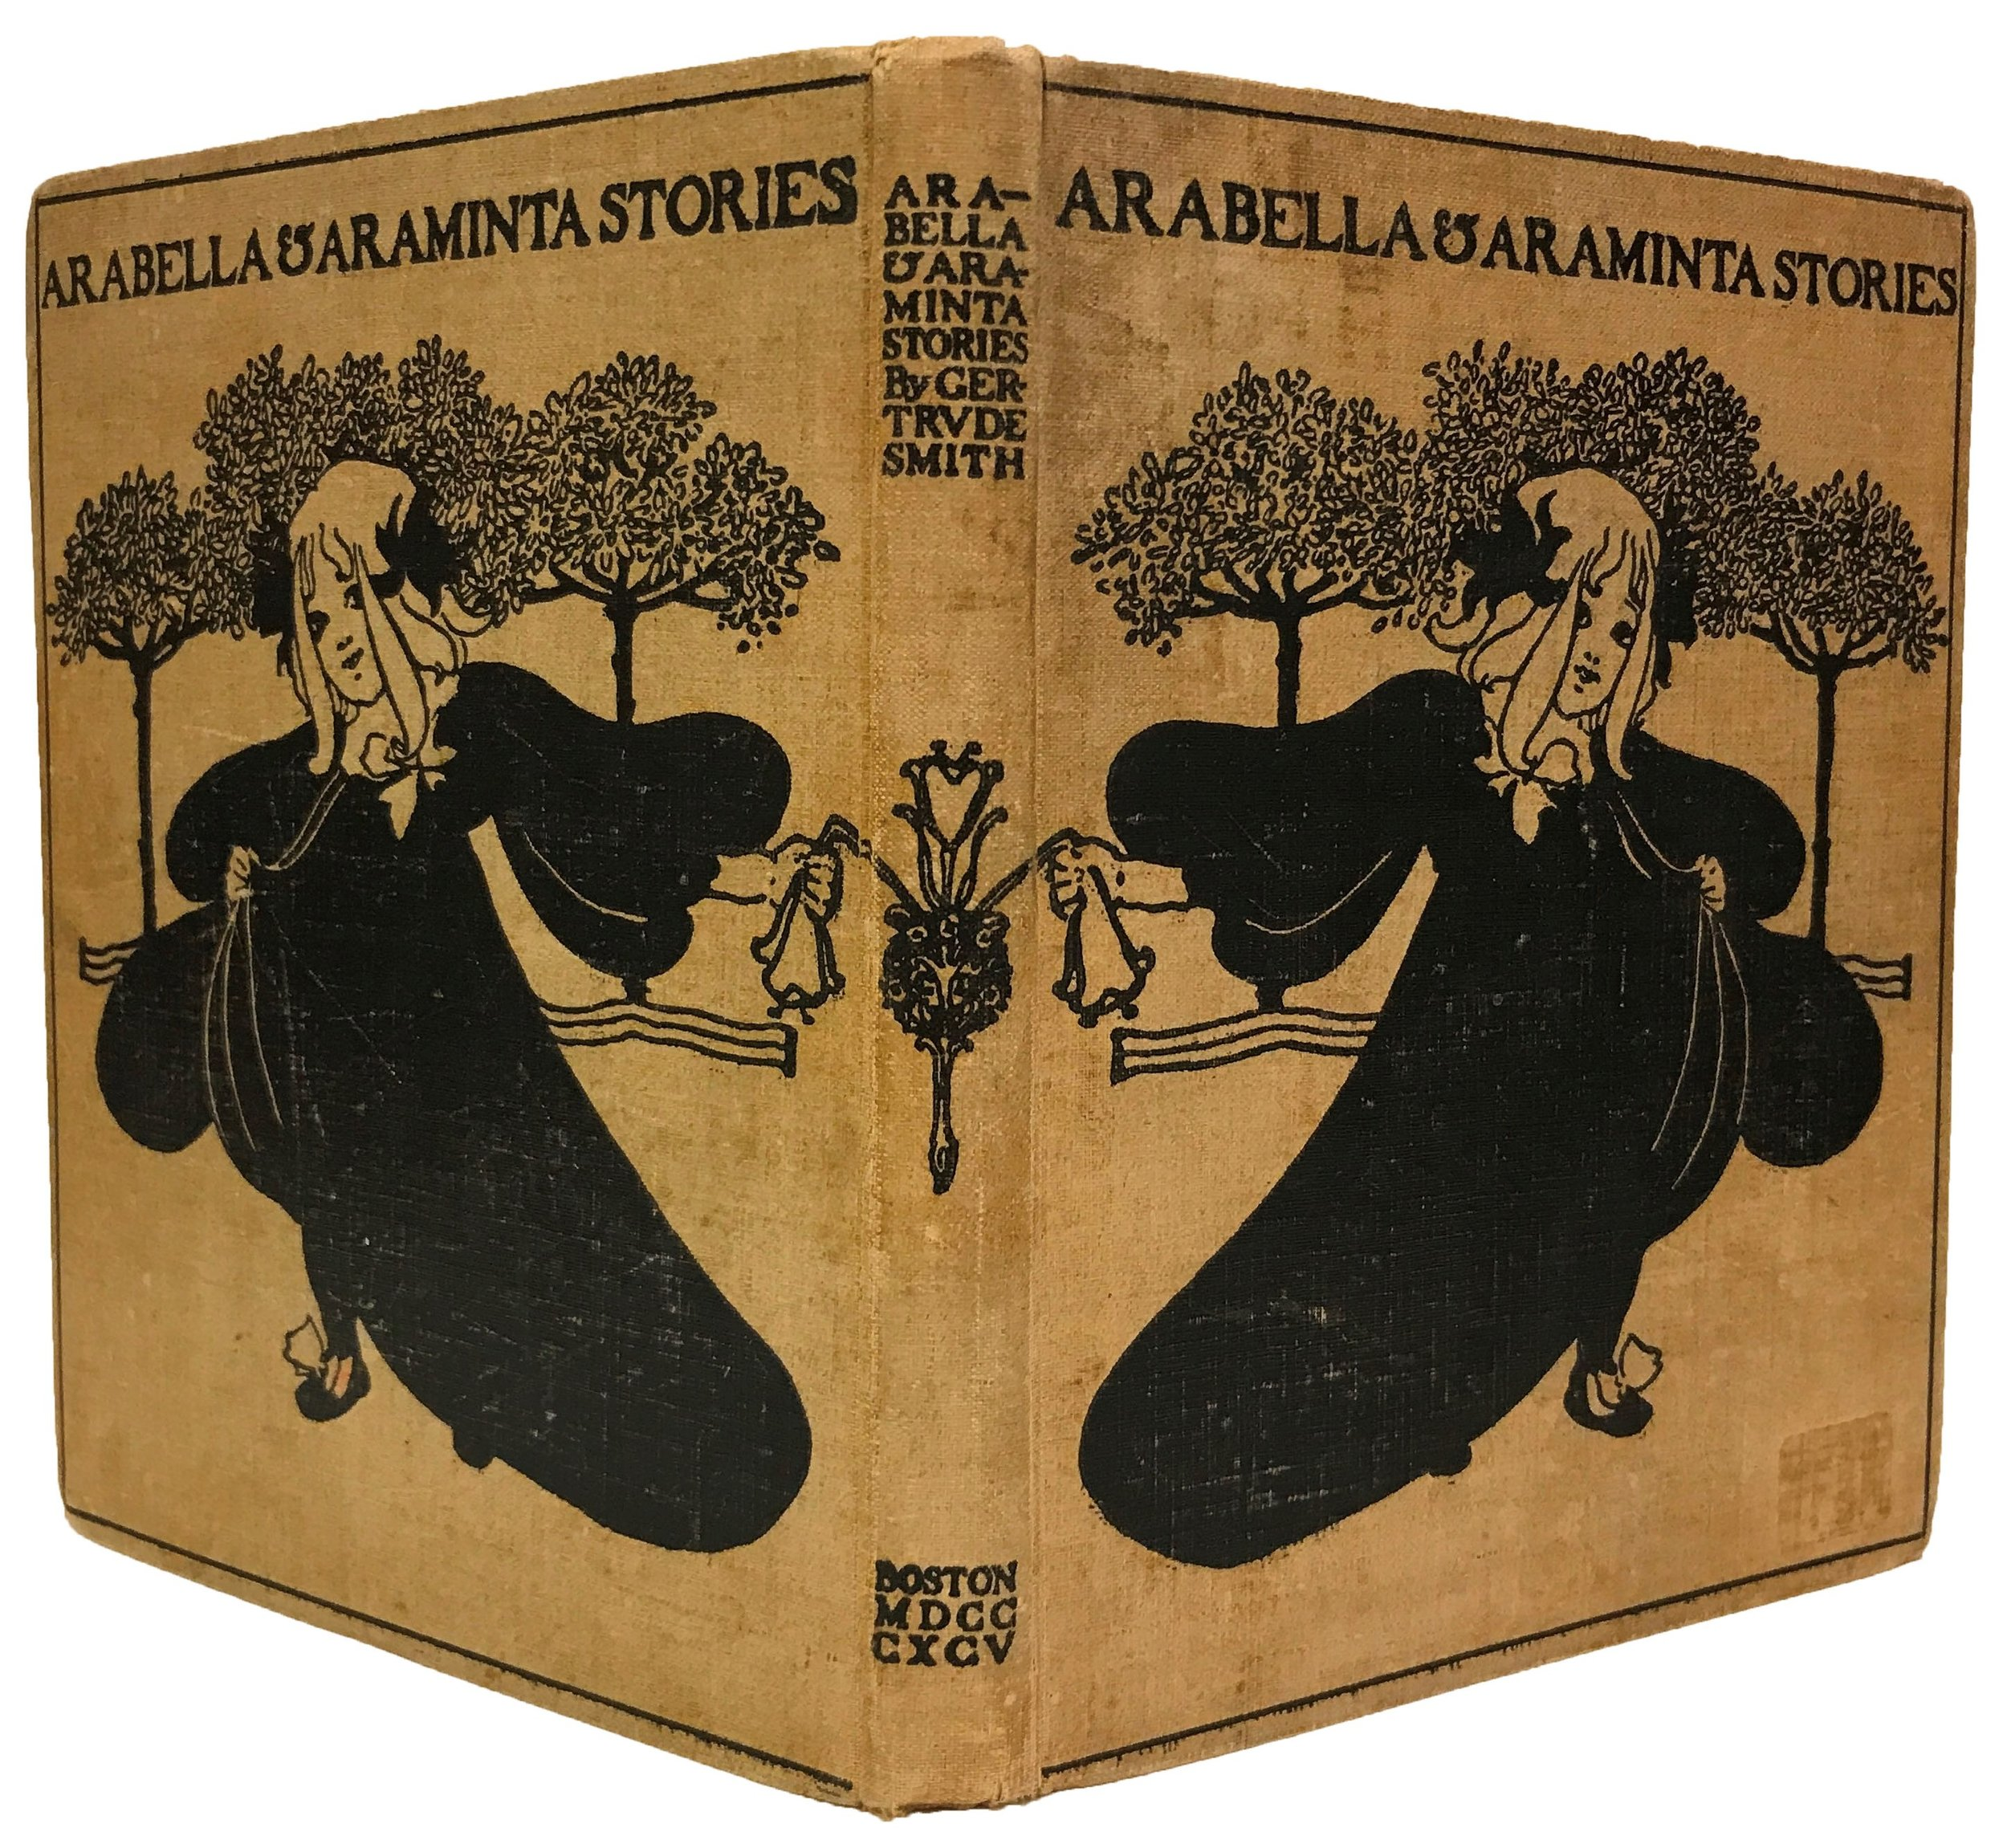 """Fun and charming cover for a book about twin girls - Smith, Gertrude, """"Arabella and Araminta Stories,""""Helen Farr Sloan Library & Archives Online Exhibitions, accessed July 9, 2017,https://delartlibrary.omeka.net/items/show/93.Thank you for exhibiting the book opened!"""